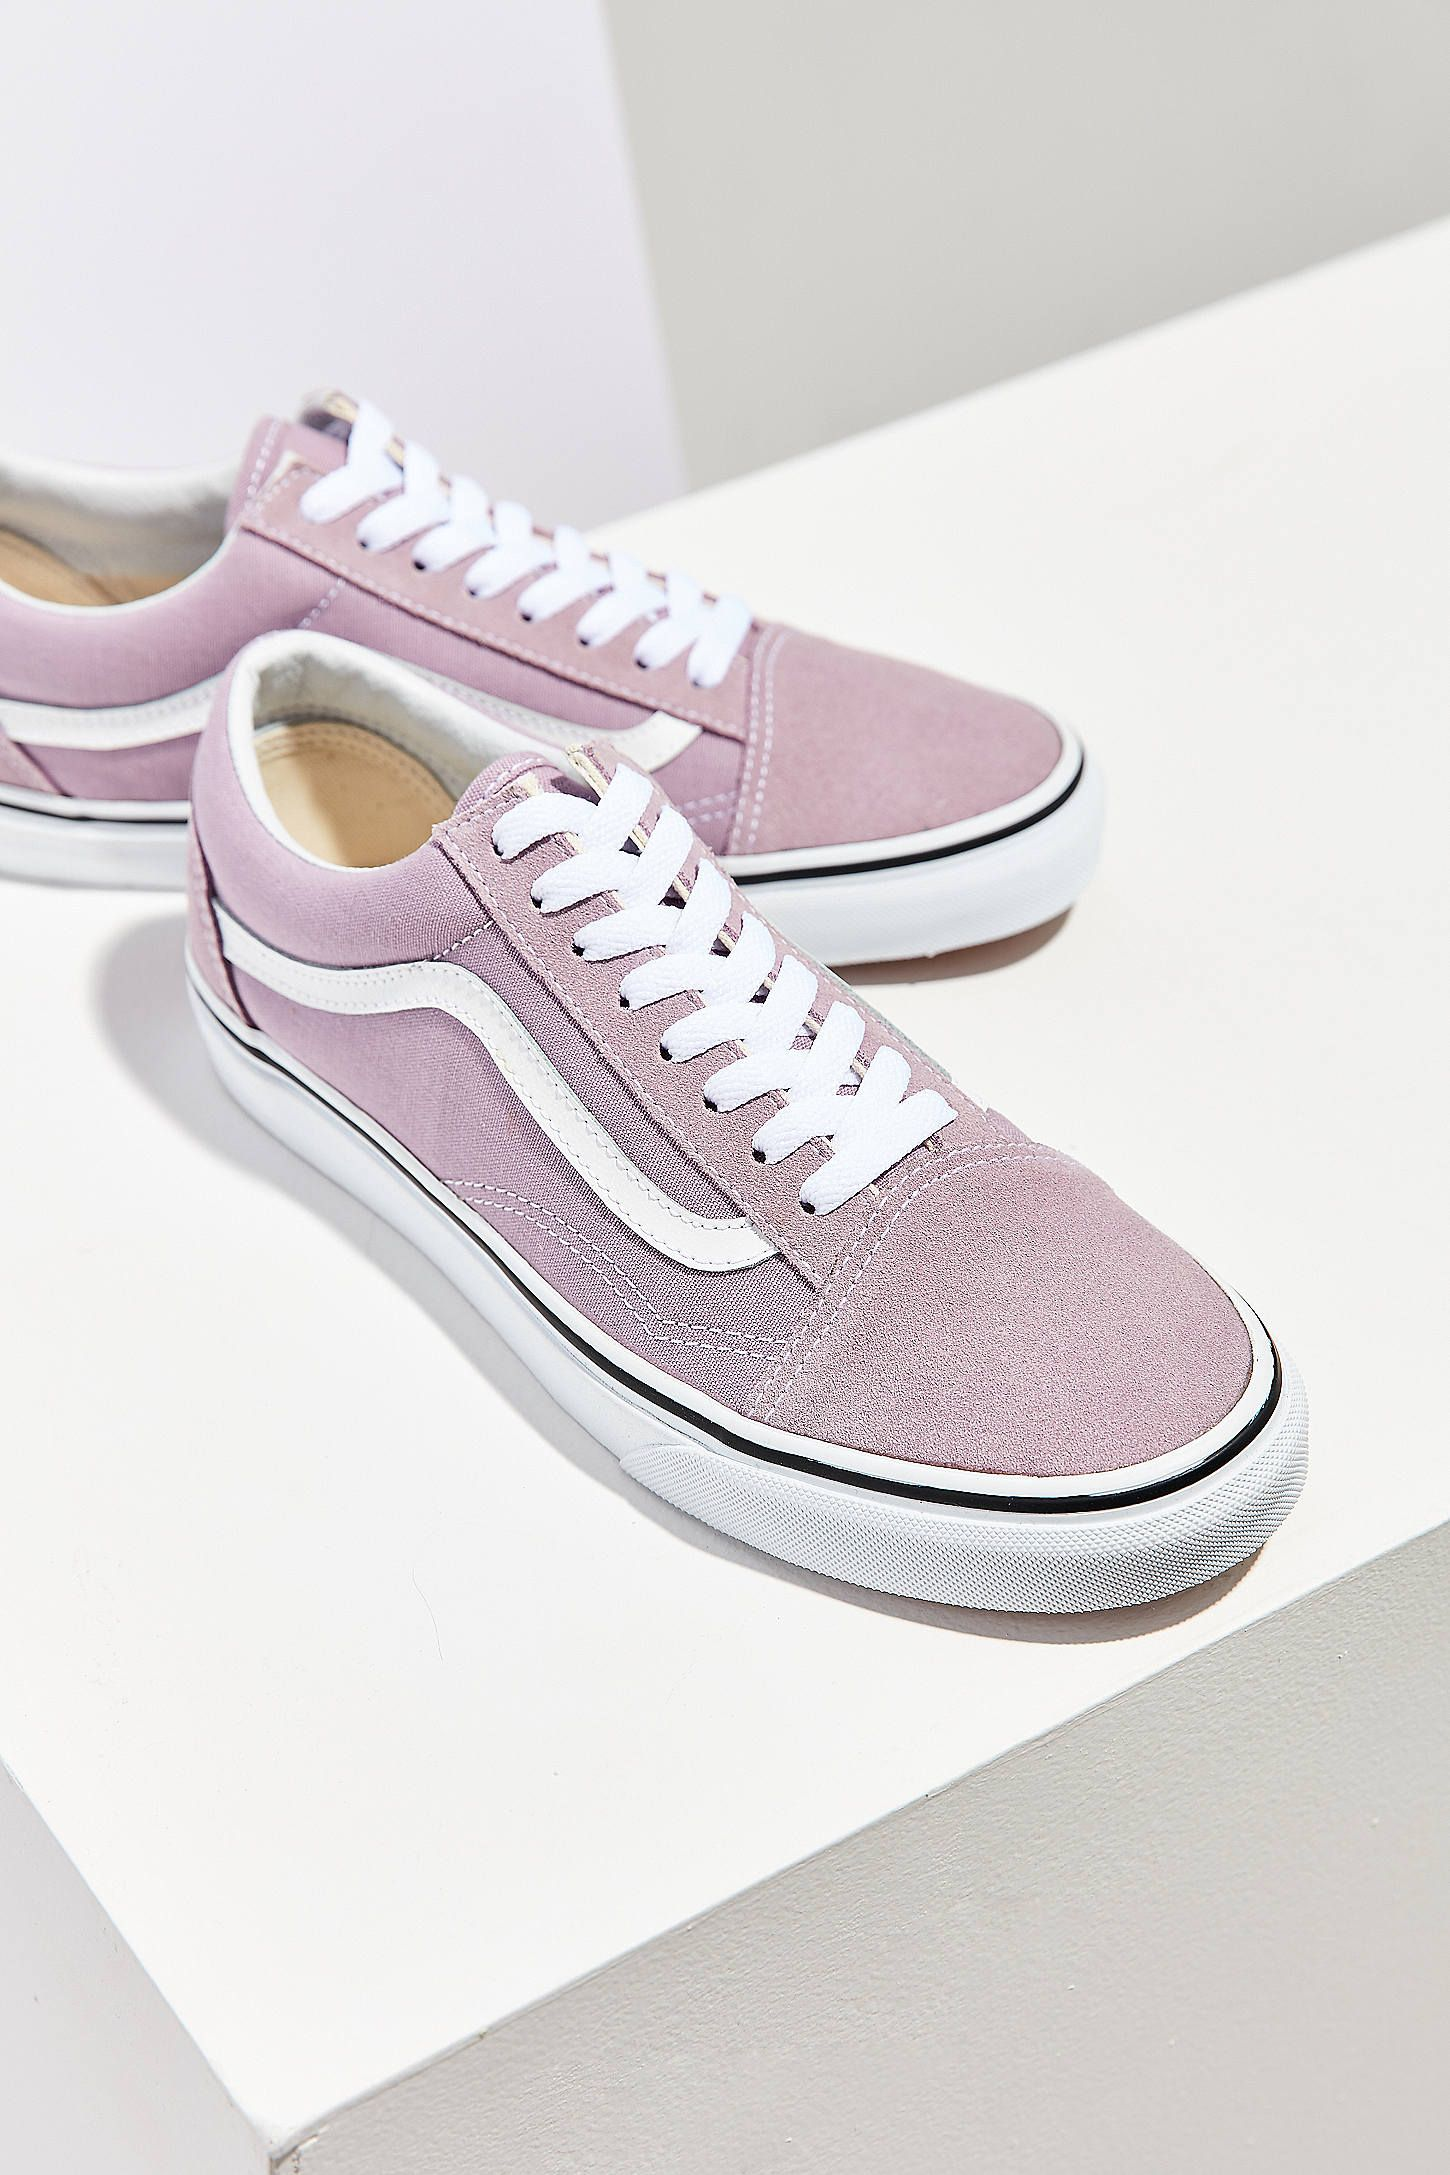 f8078a69da Slide View  2  Vans Lilac Old Skool Sneaker